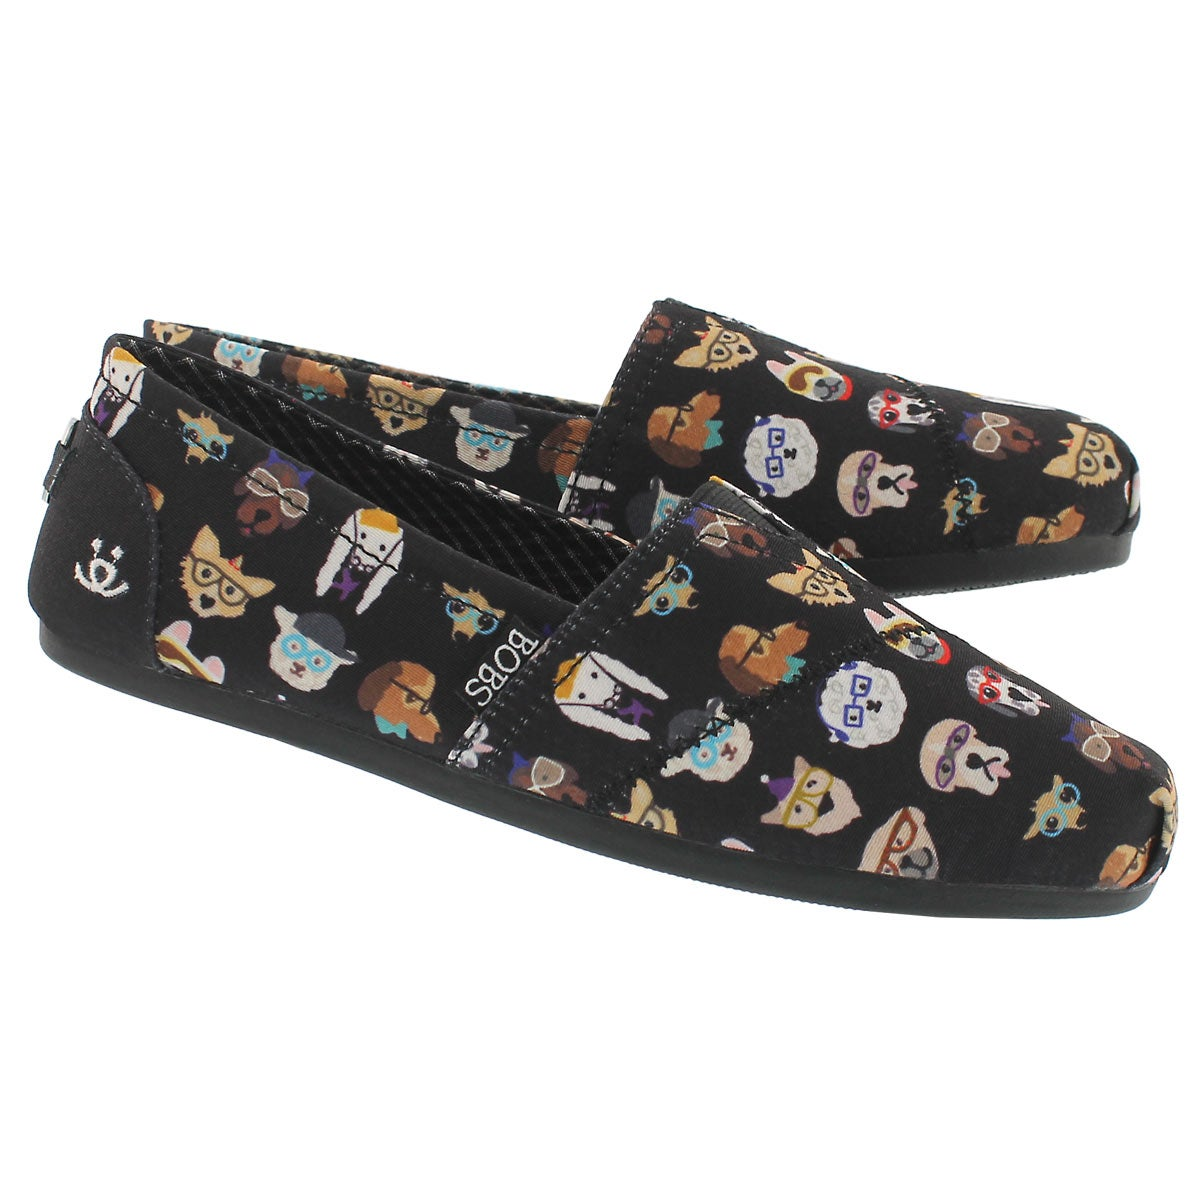 Lds Bobs Plush Pup Smarts blk slip on